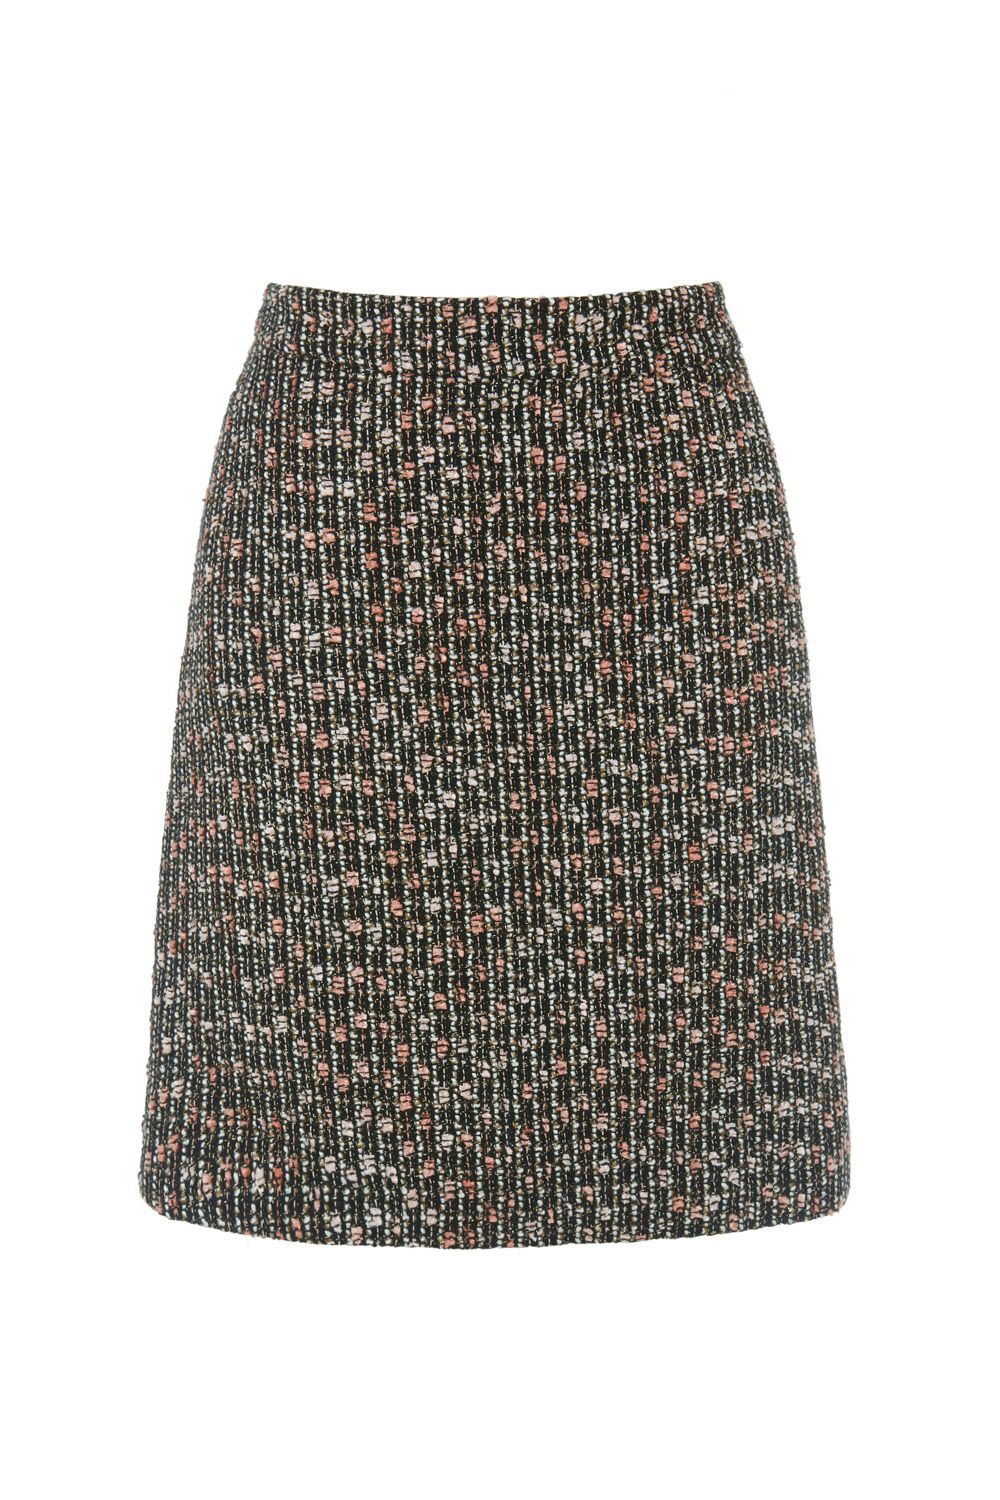 Sparkle Tweed Pelmet Skirt, Multi Coloured - style: pencil; fit: body skimming; waist: high rise; pattern: herringbone/tweed; predominant colour: charcoal; occasions: work, creative work; length: just above the knee; fibres: acrylic - mix; pattern type: fabric; texture group: tweed - light/midweight; pattern size: big & busy (bottom); multicoloured: multicoloured; season: a/w 2016; wardrobe: highlight